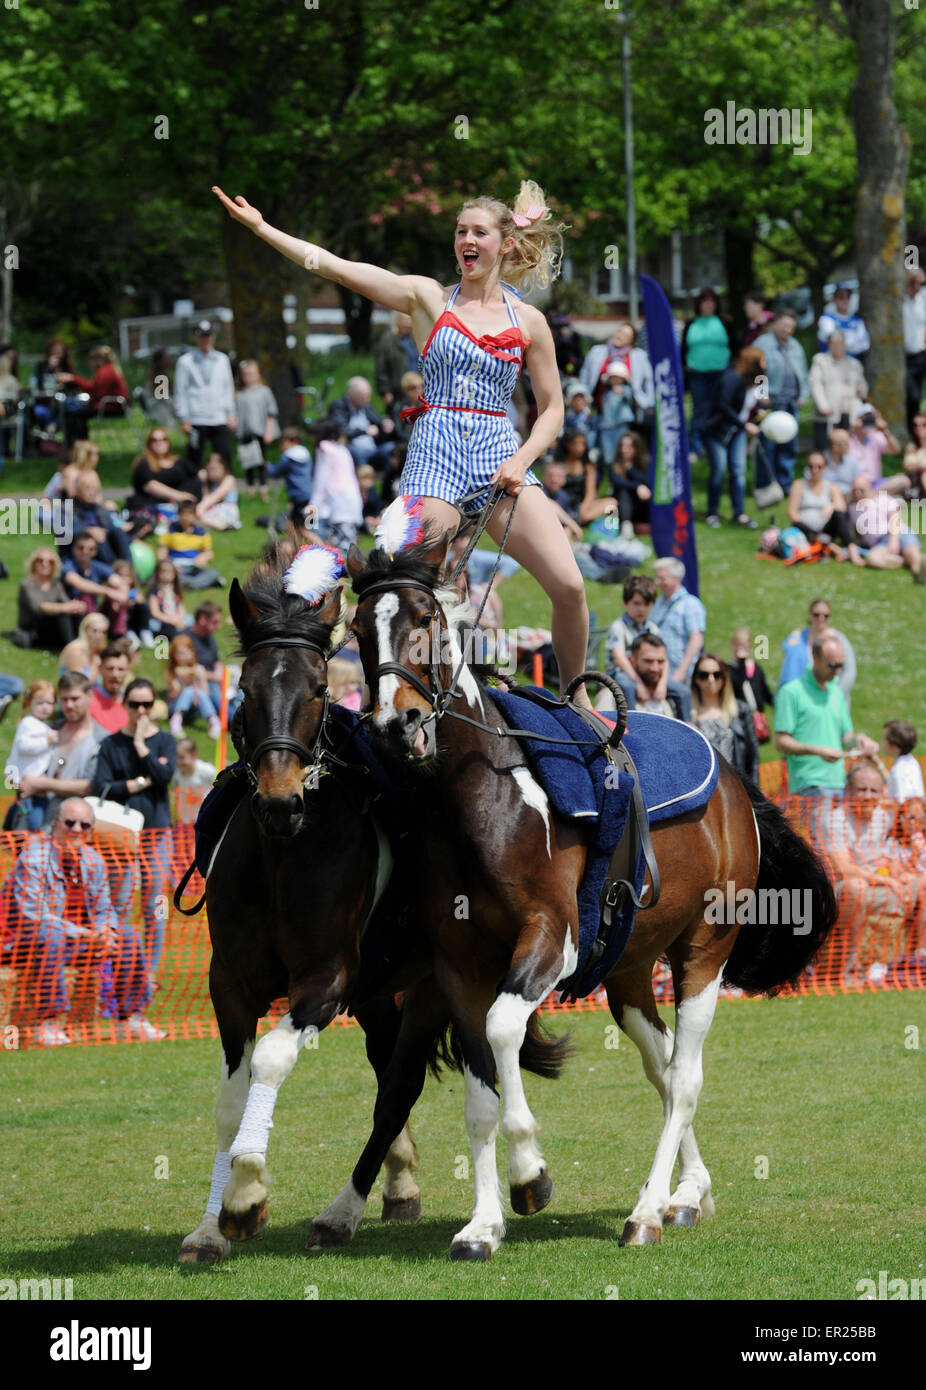 Brighton, UK. 25th May, 2015. Rosie one one of the Galloping Acrobats riding Tinker perform at Hove Carnival as - Stock Image